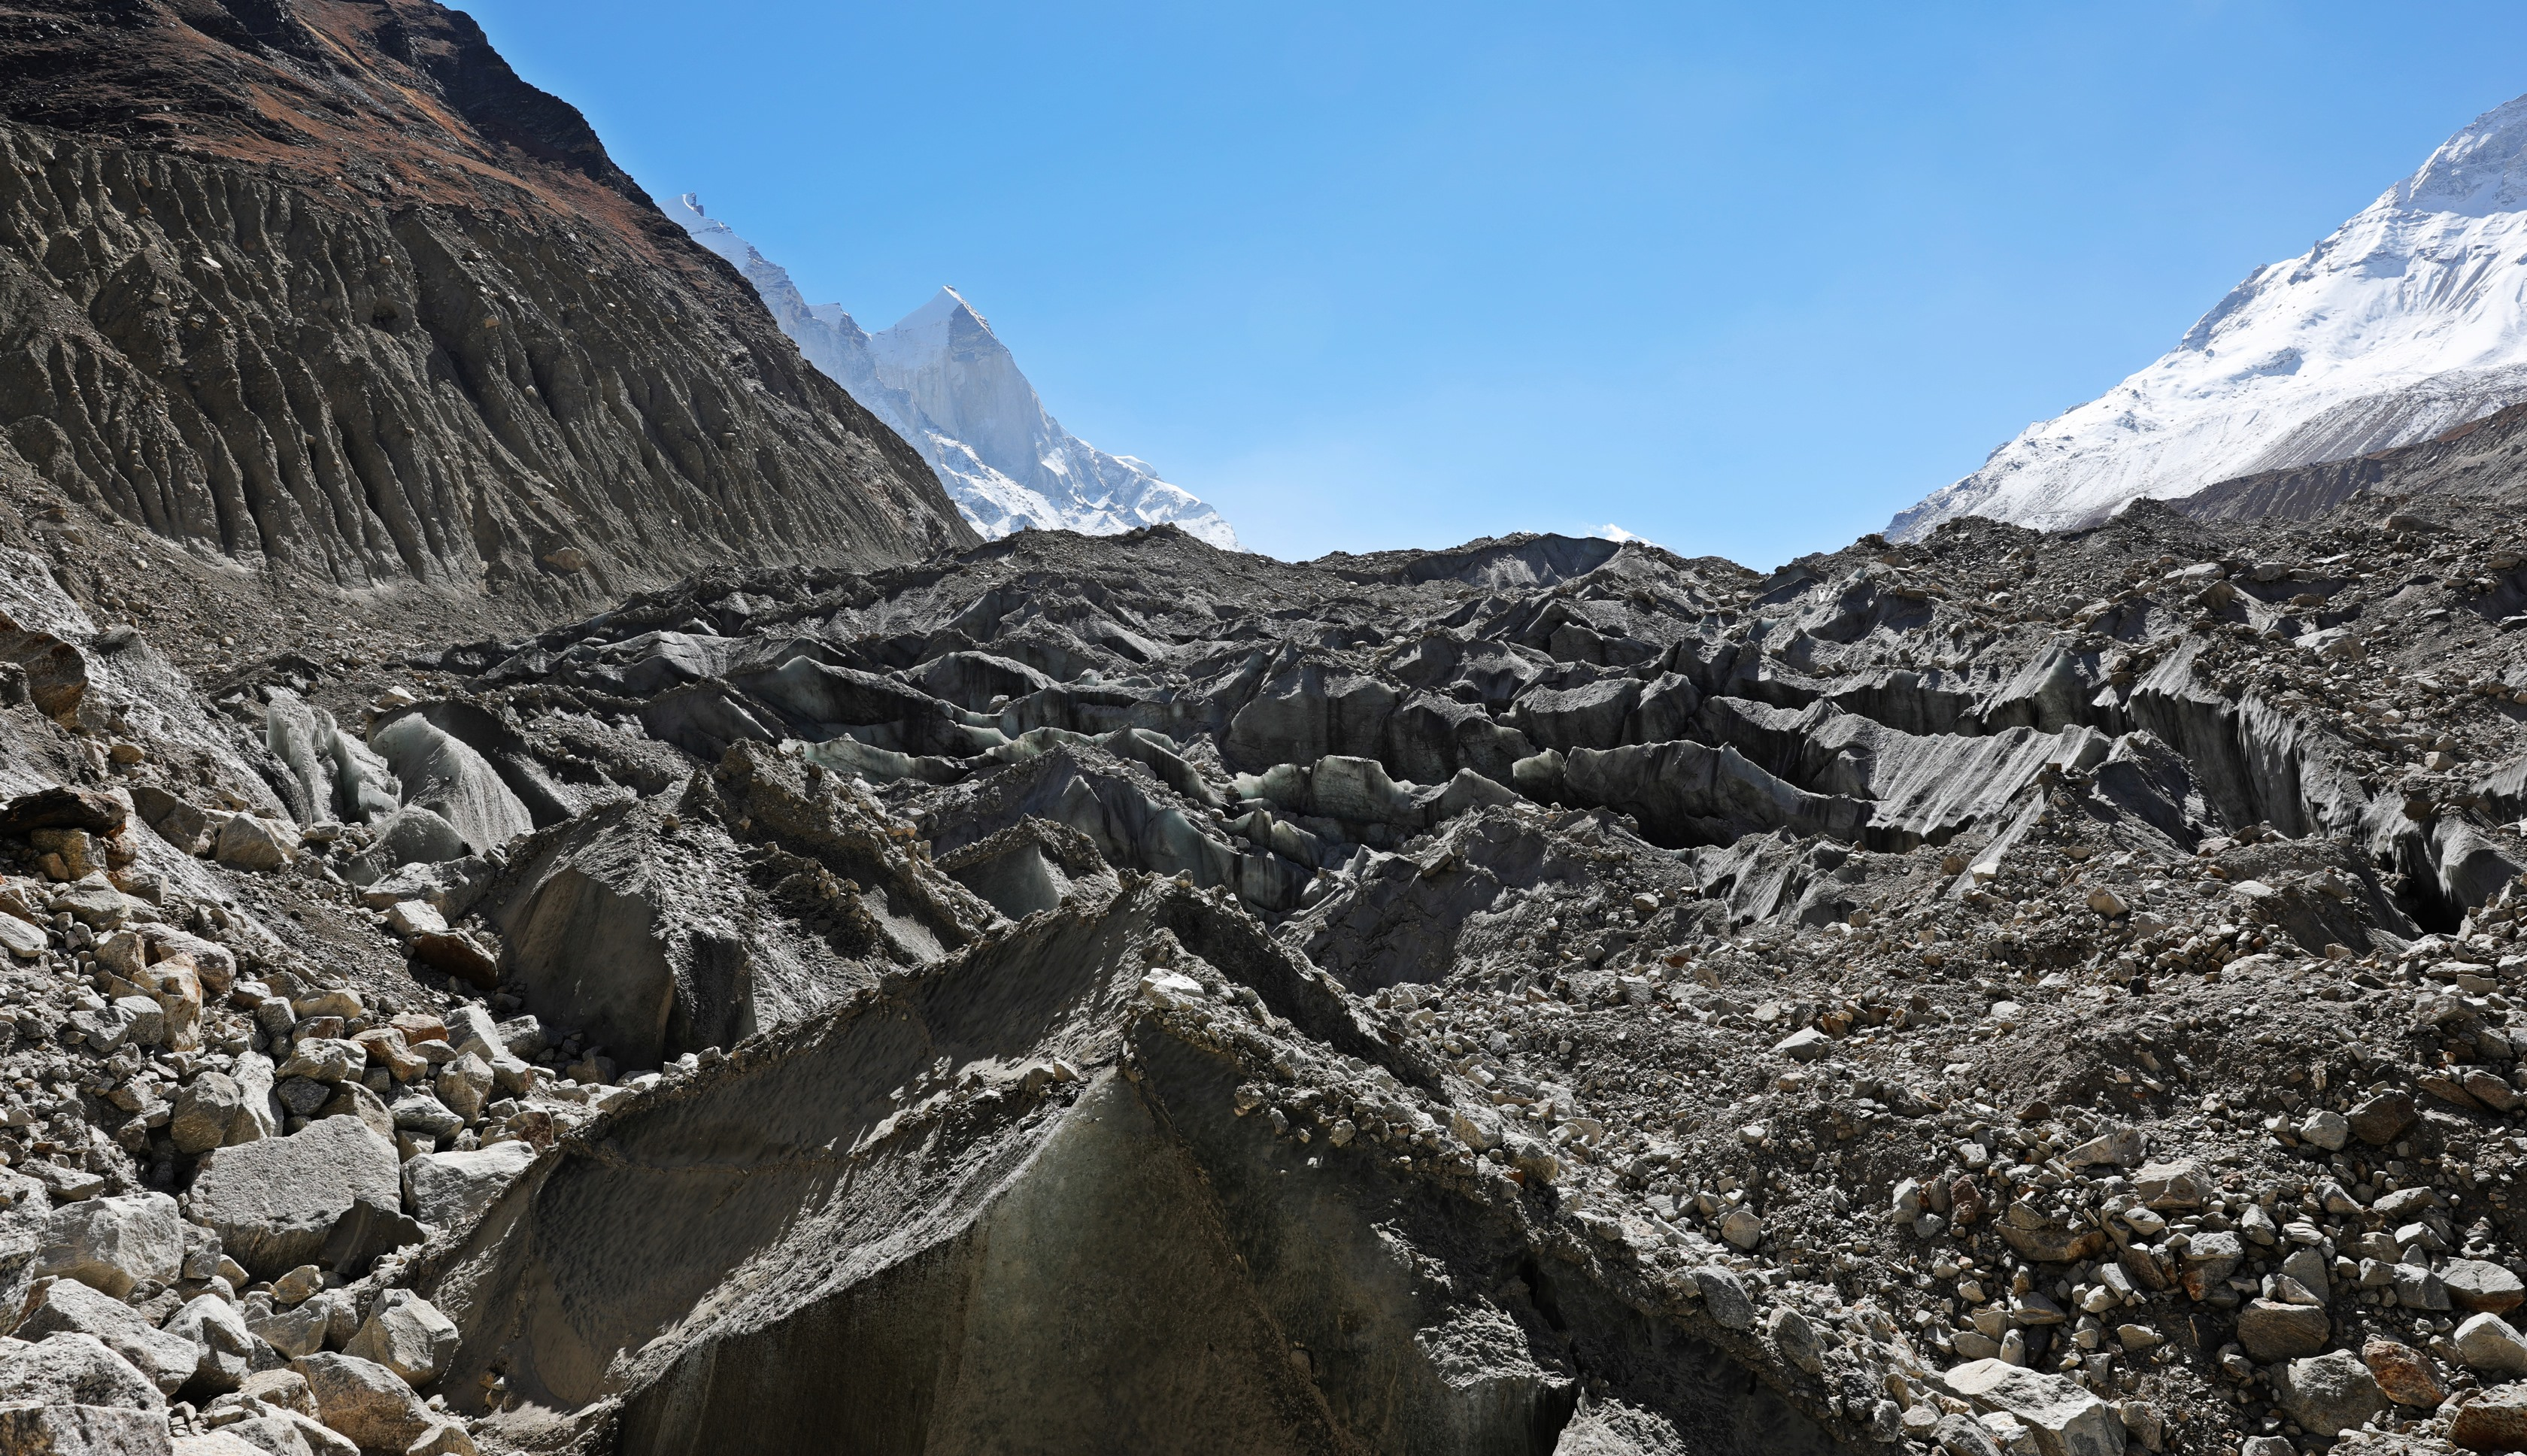 The crevasses of Gaumukh Glacier